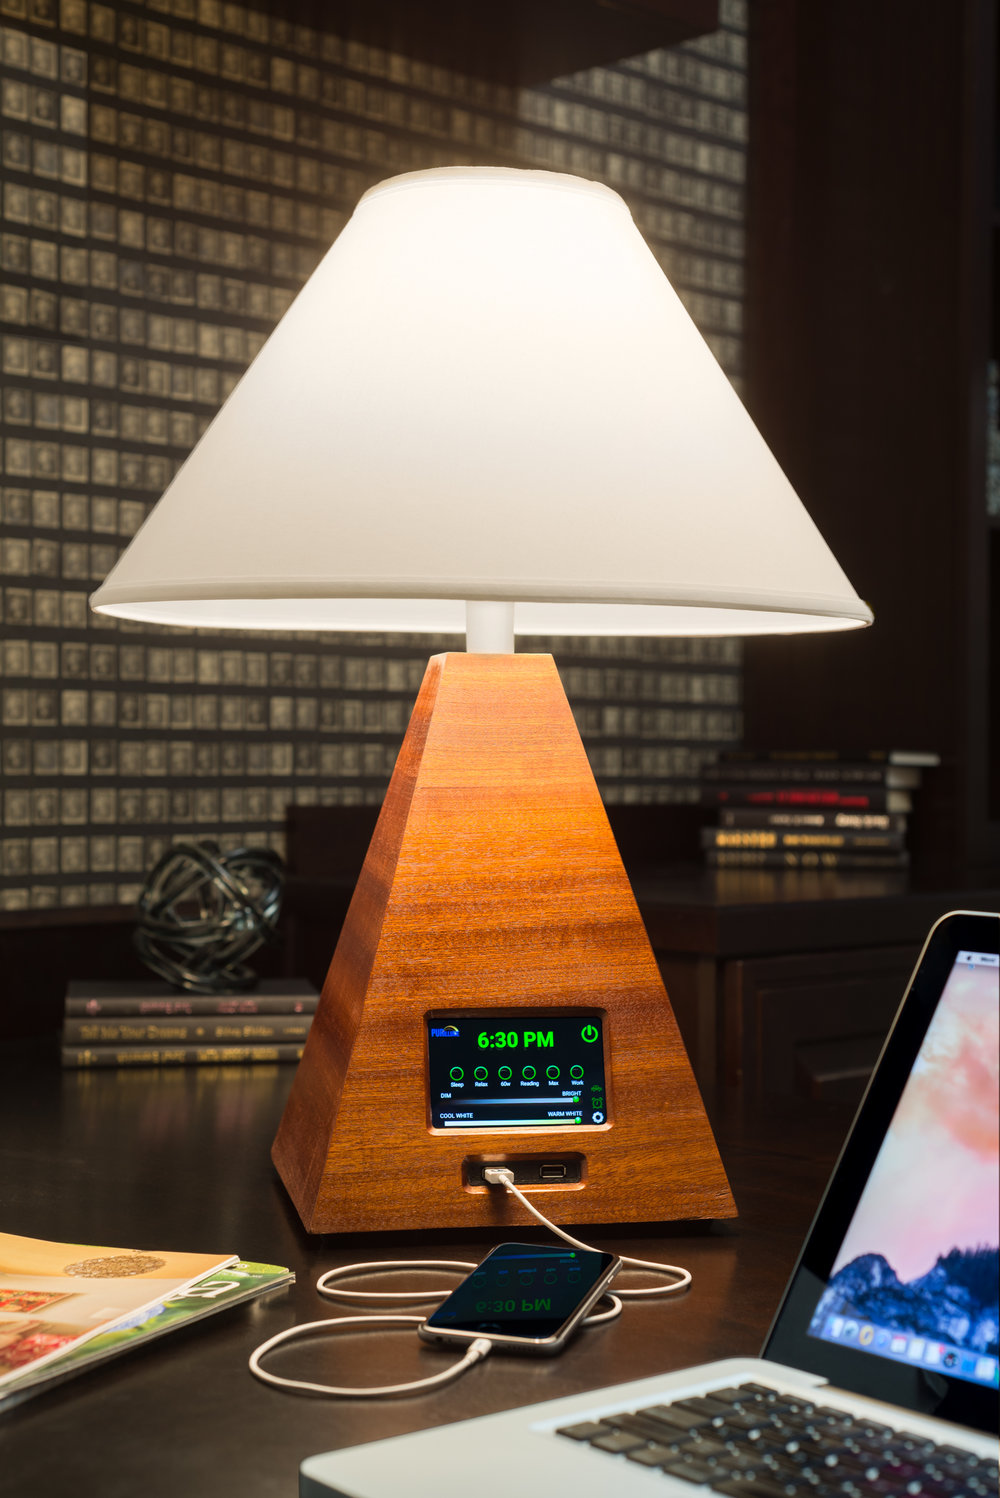 The Orchid LED Lamp master with touch screen controls.